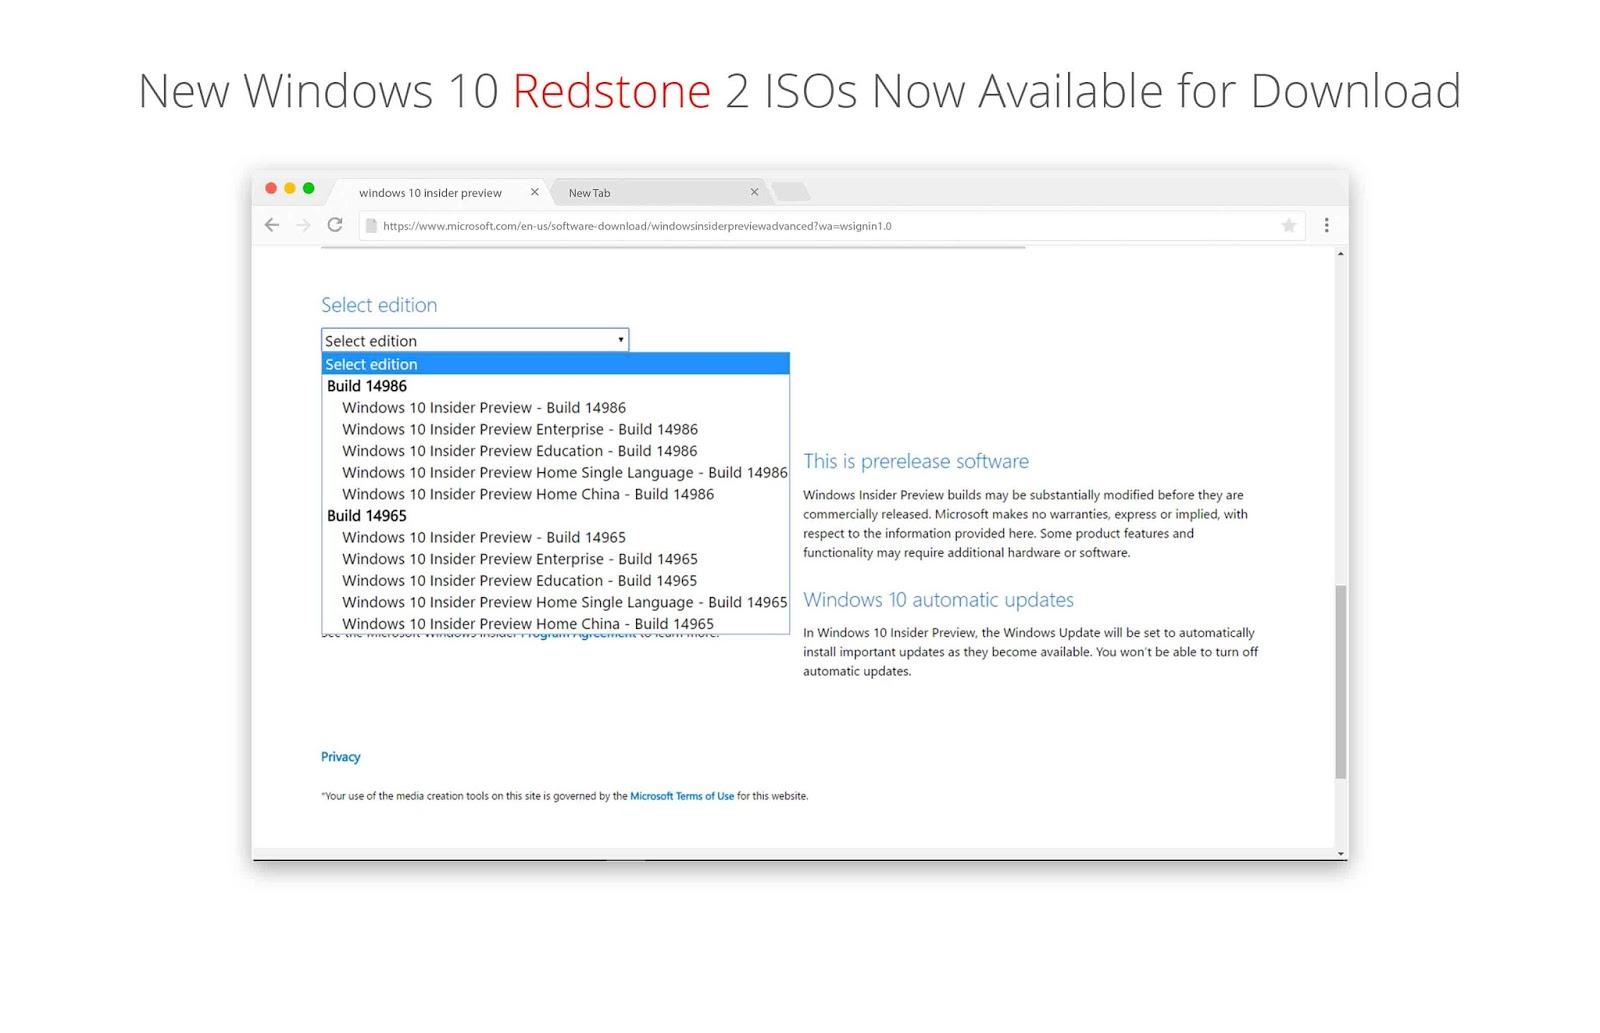 new-windows-10-redstone-2-isos-is-now-availavble-for-download